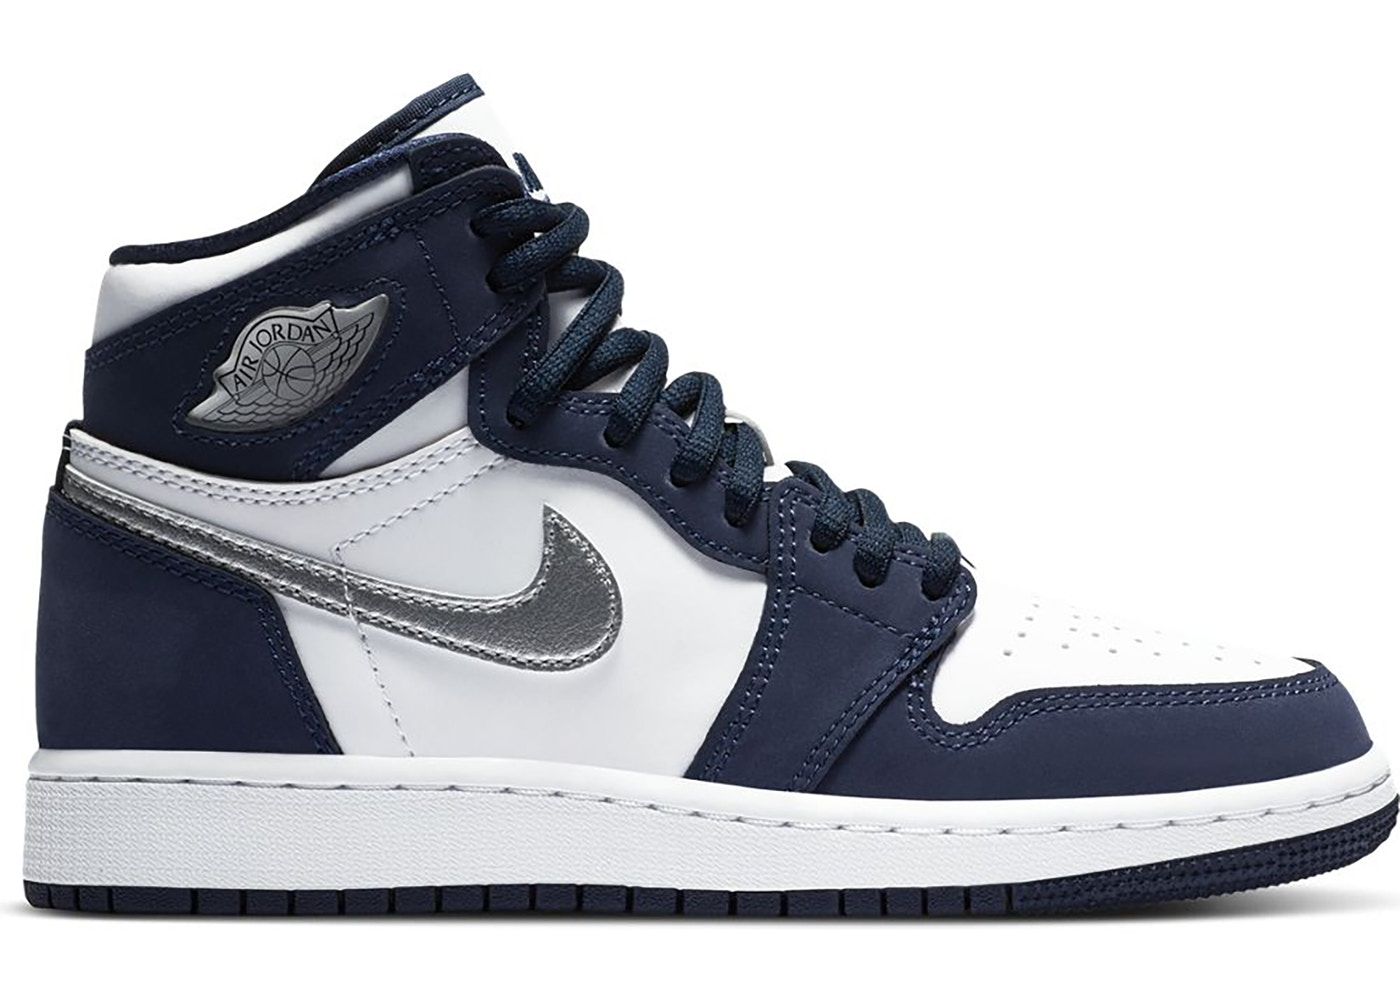 Jordan 1 Retro High CO Japan Midnight Navy (GS)